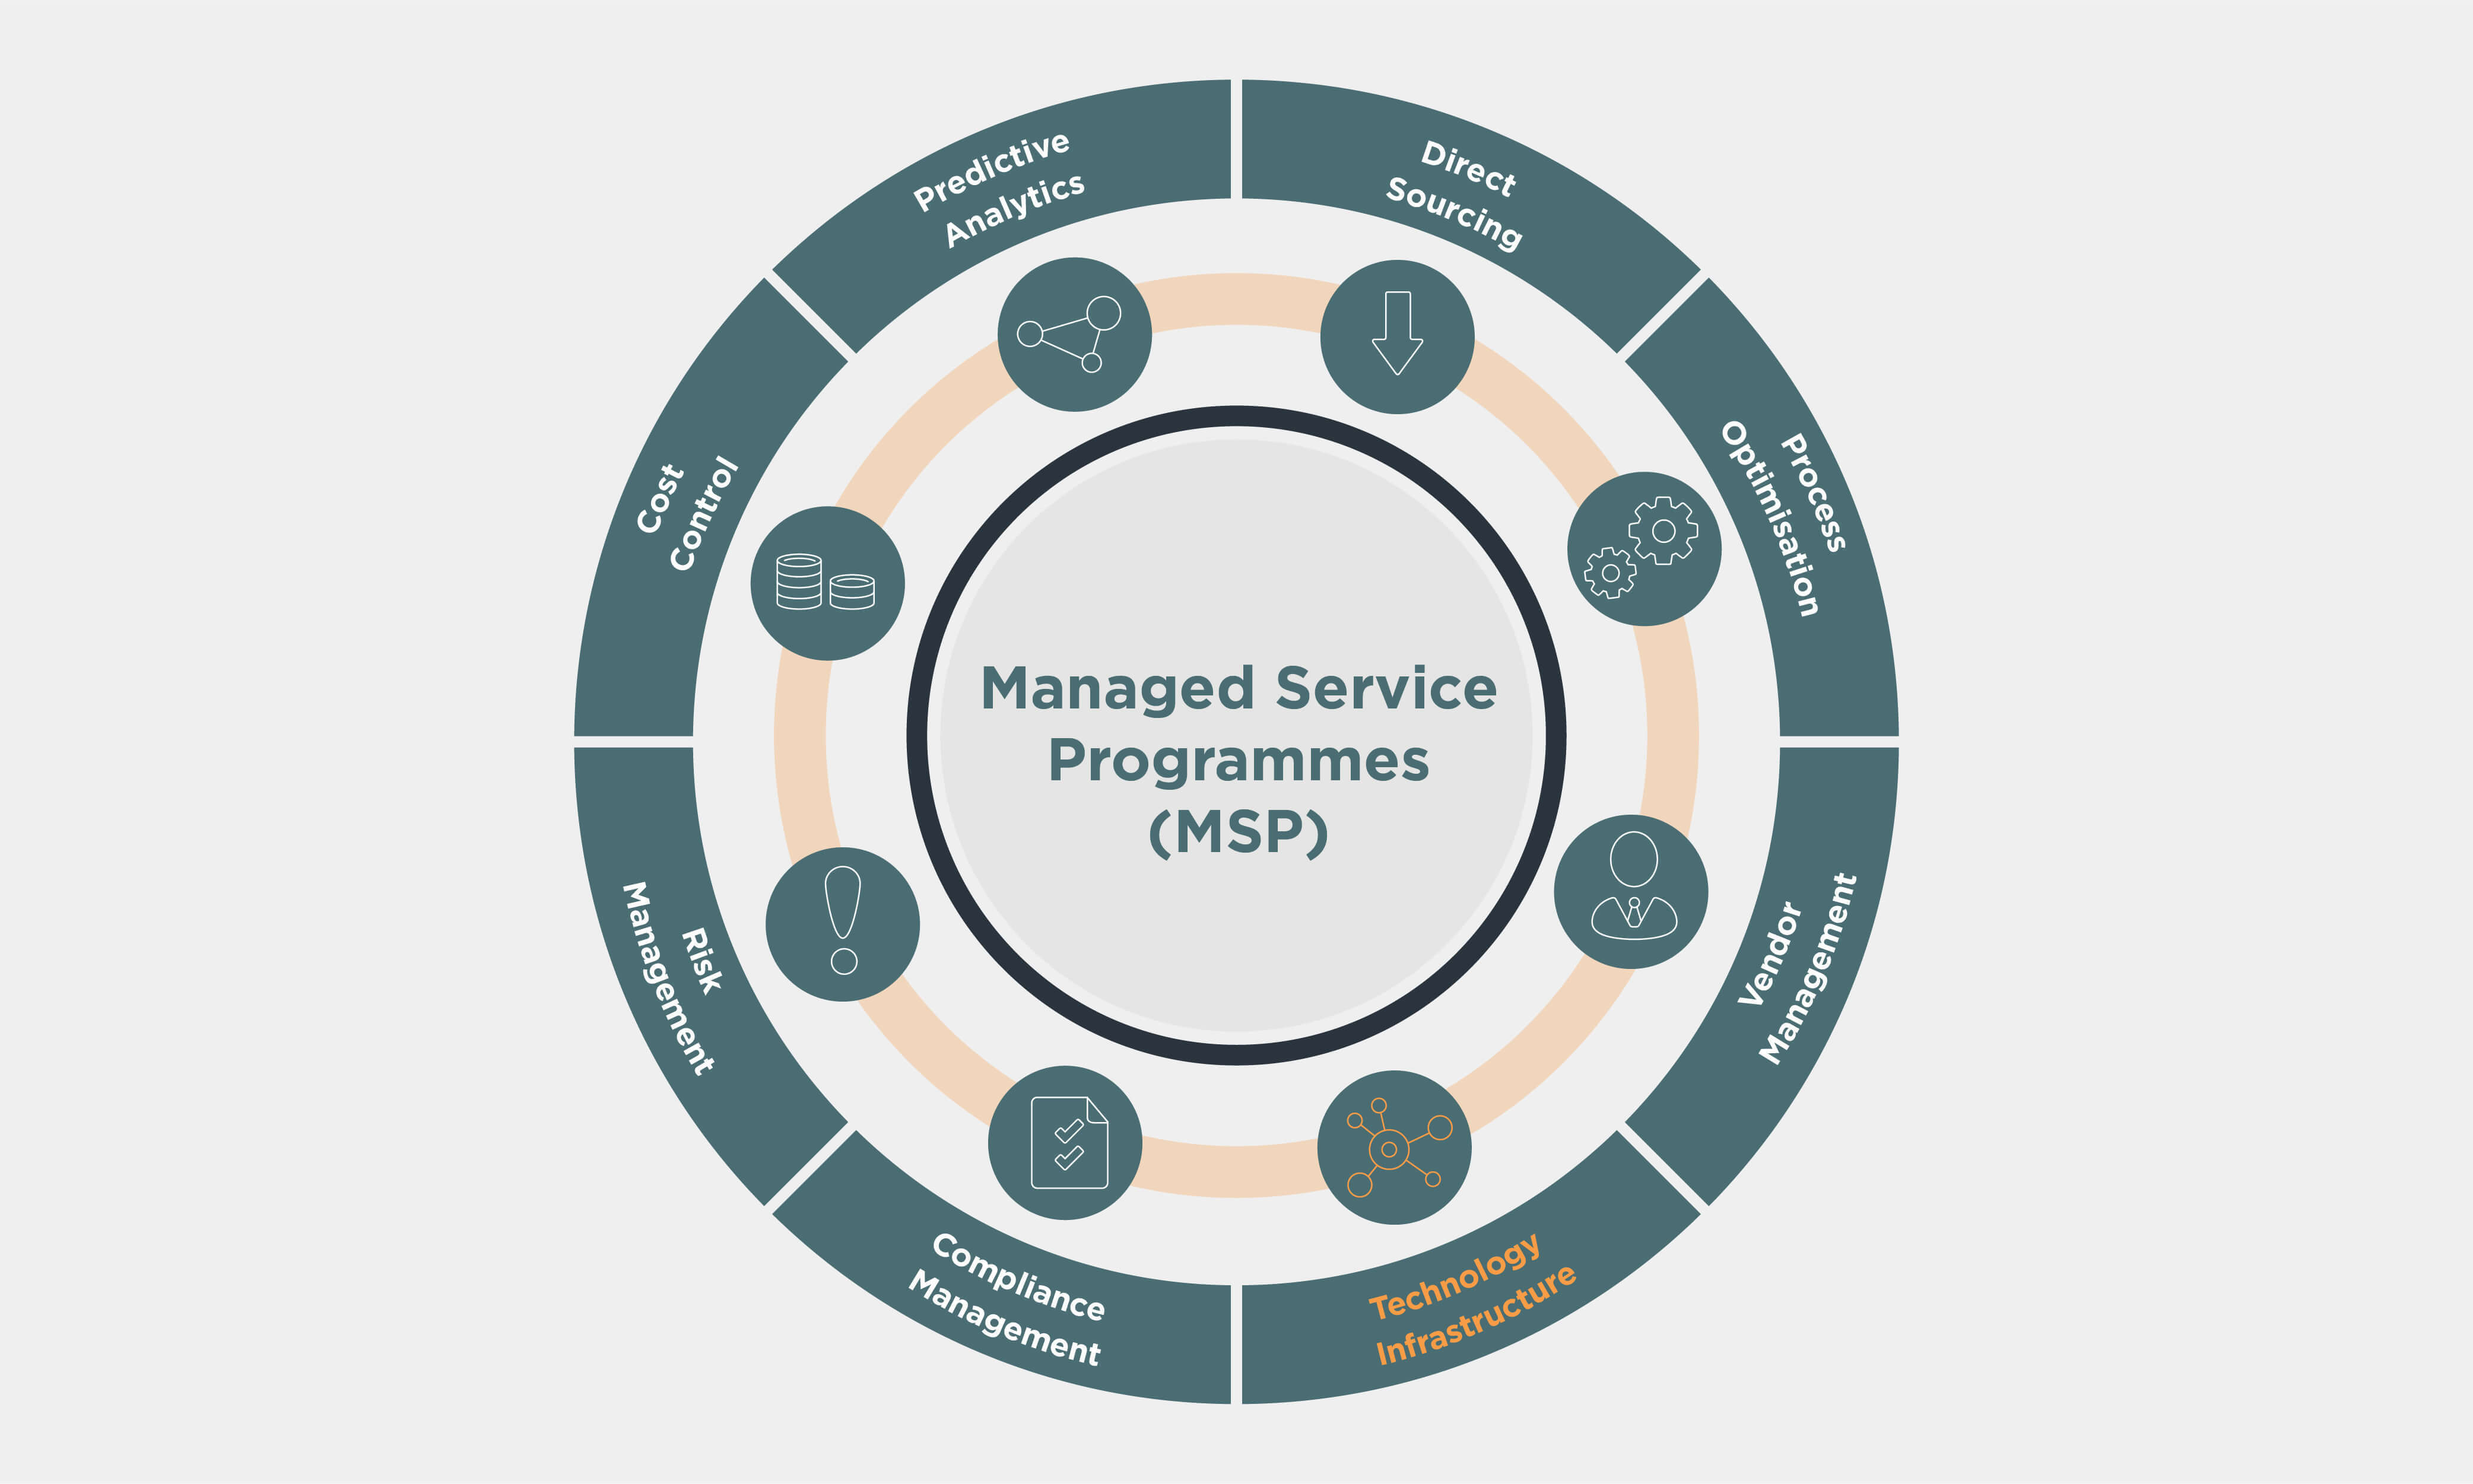 Managed Service Programmes (MSP) wheel with Technology Infrastructure highlighted in orange